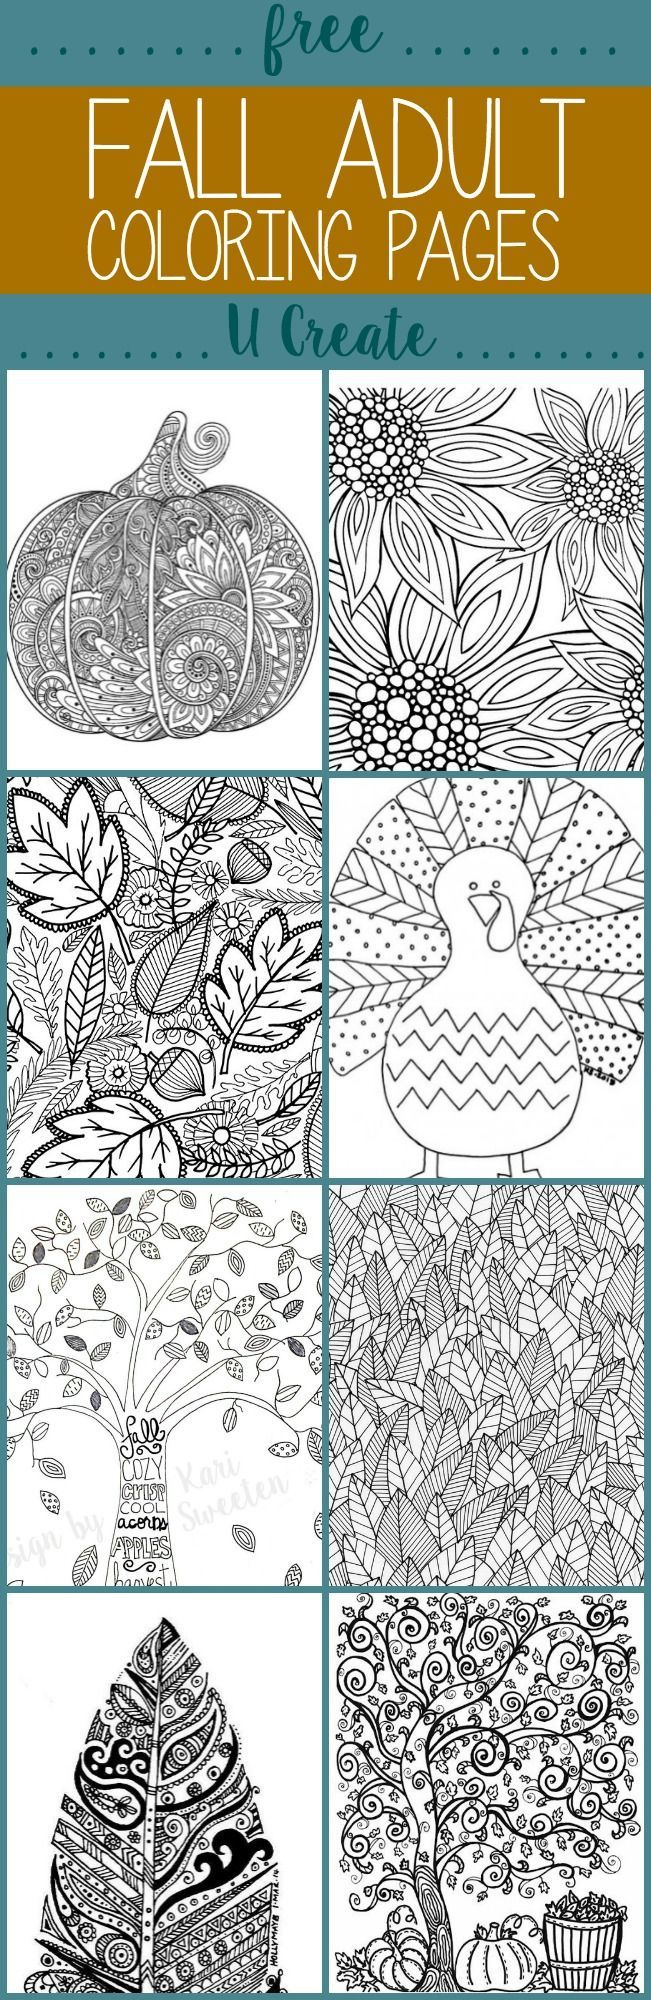 Free Fall Adult Coloring Pages (U Create) | Adult coloring, Free and ...